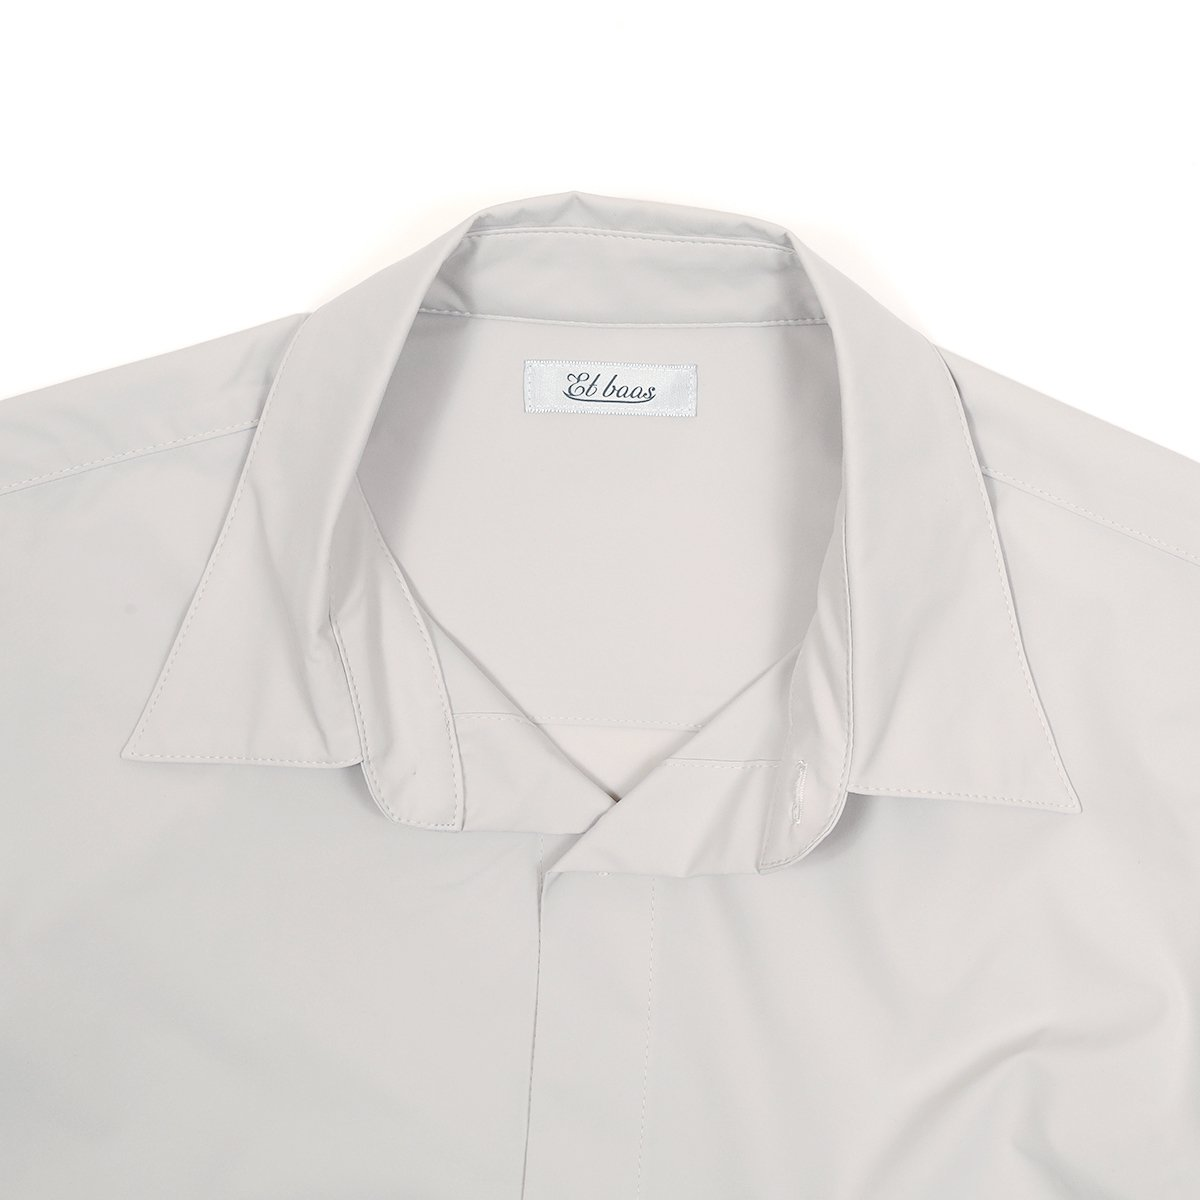 S/S Over size SHIRTS(SOLOTEX) 詳細画像18